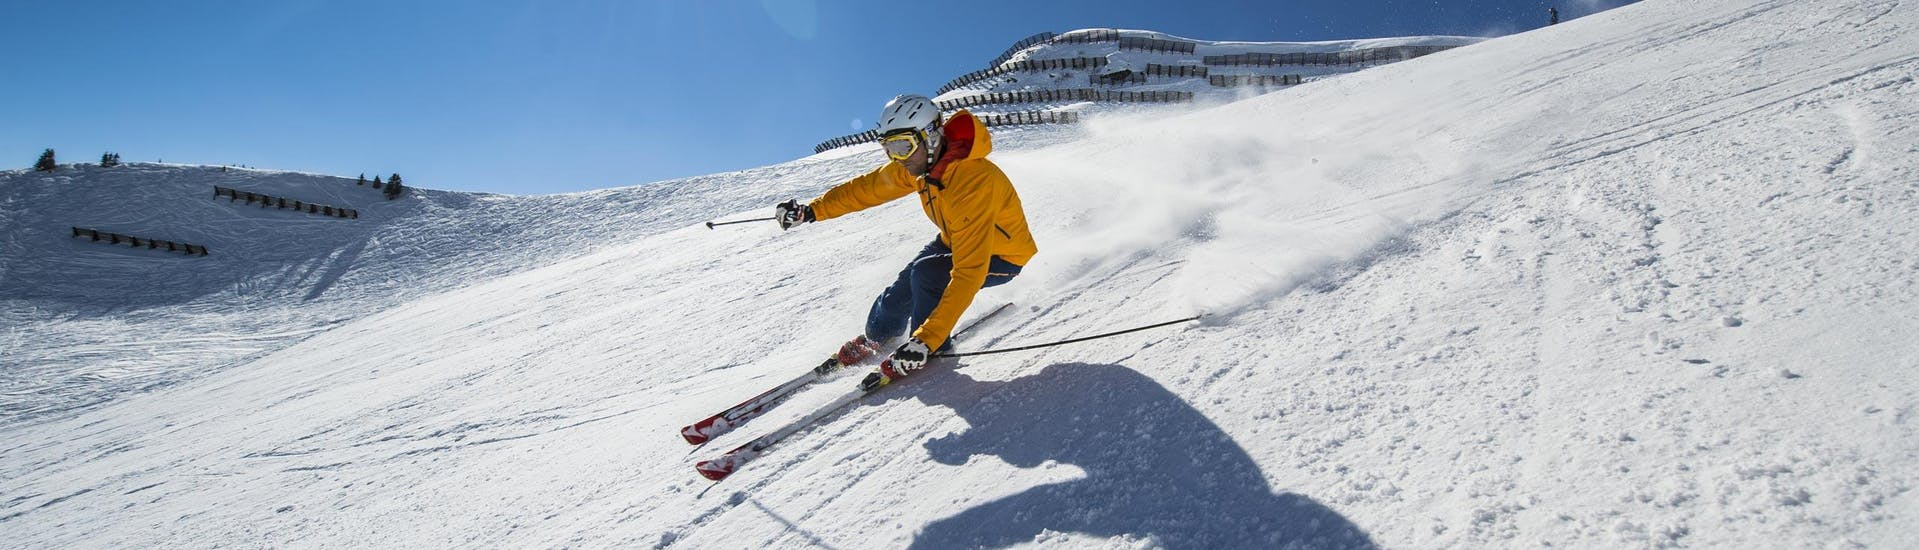 Alpine skiing technique lessons: A skier is skiing down a sunny ski slope while participating in an activity offered by Skischule Alpin Experts.